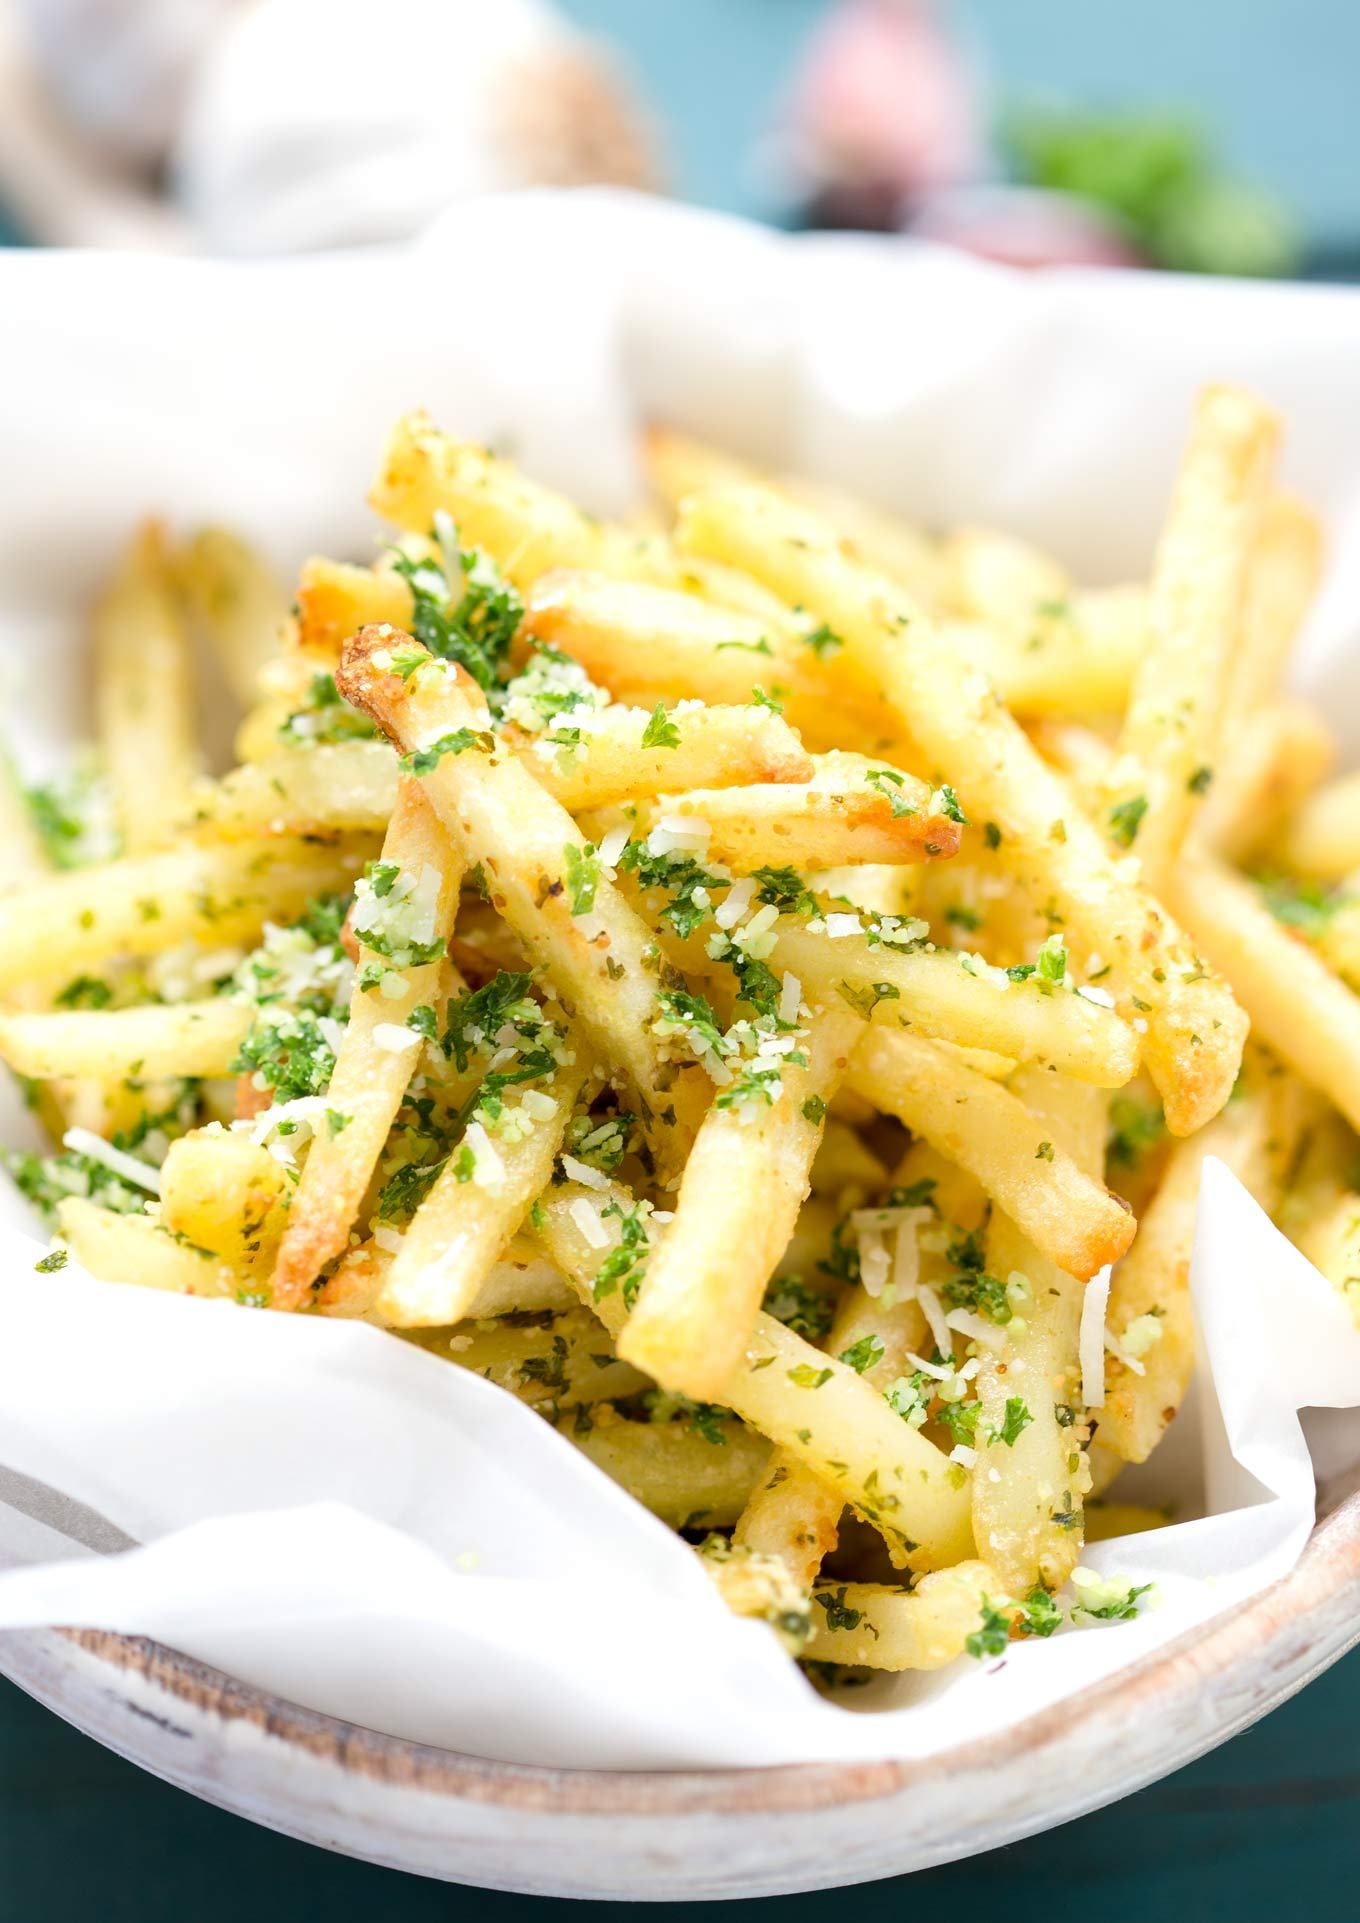 How To Make Mcdonald S Gilroy Garlic Fries Recipe Skinny Easy Check Out My Tip And Enjoy The Skinny Homemade V Fries Recipe Garlic French Fries Garlic Fries